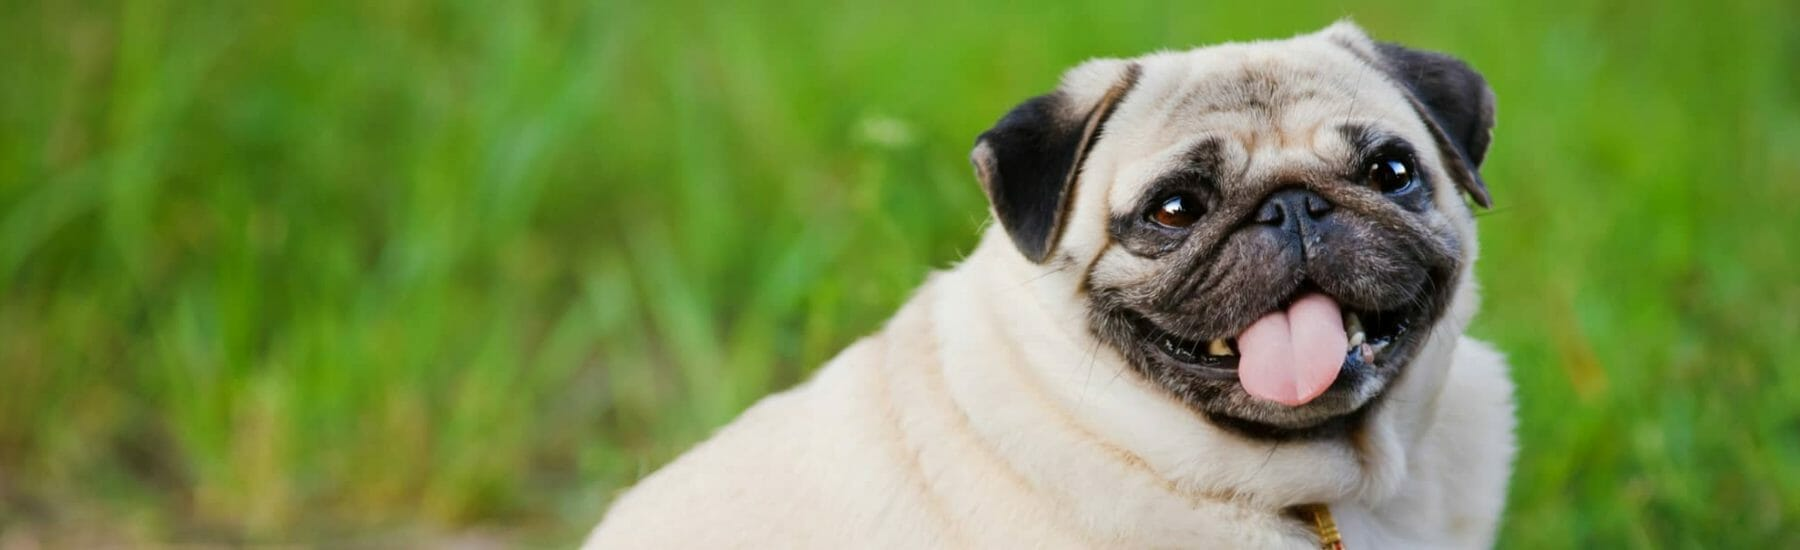 Overweight Pug sitting on the grass